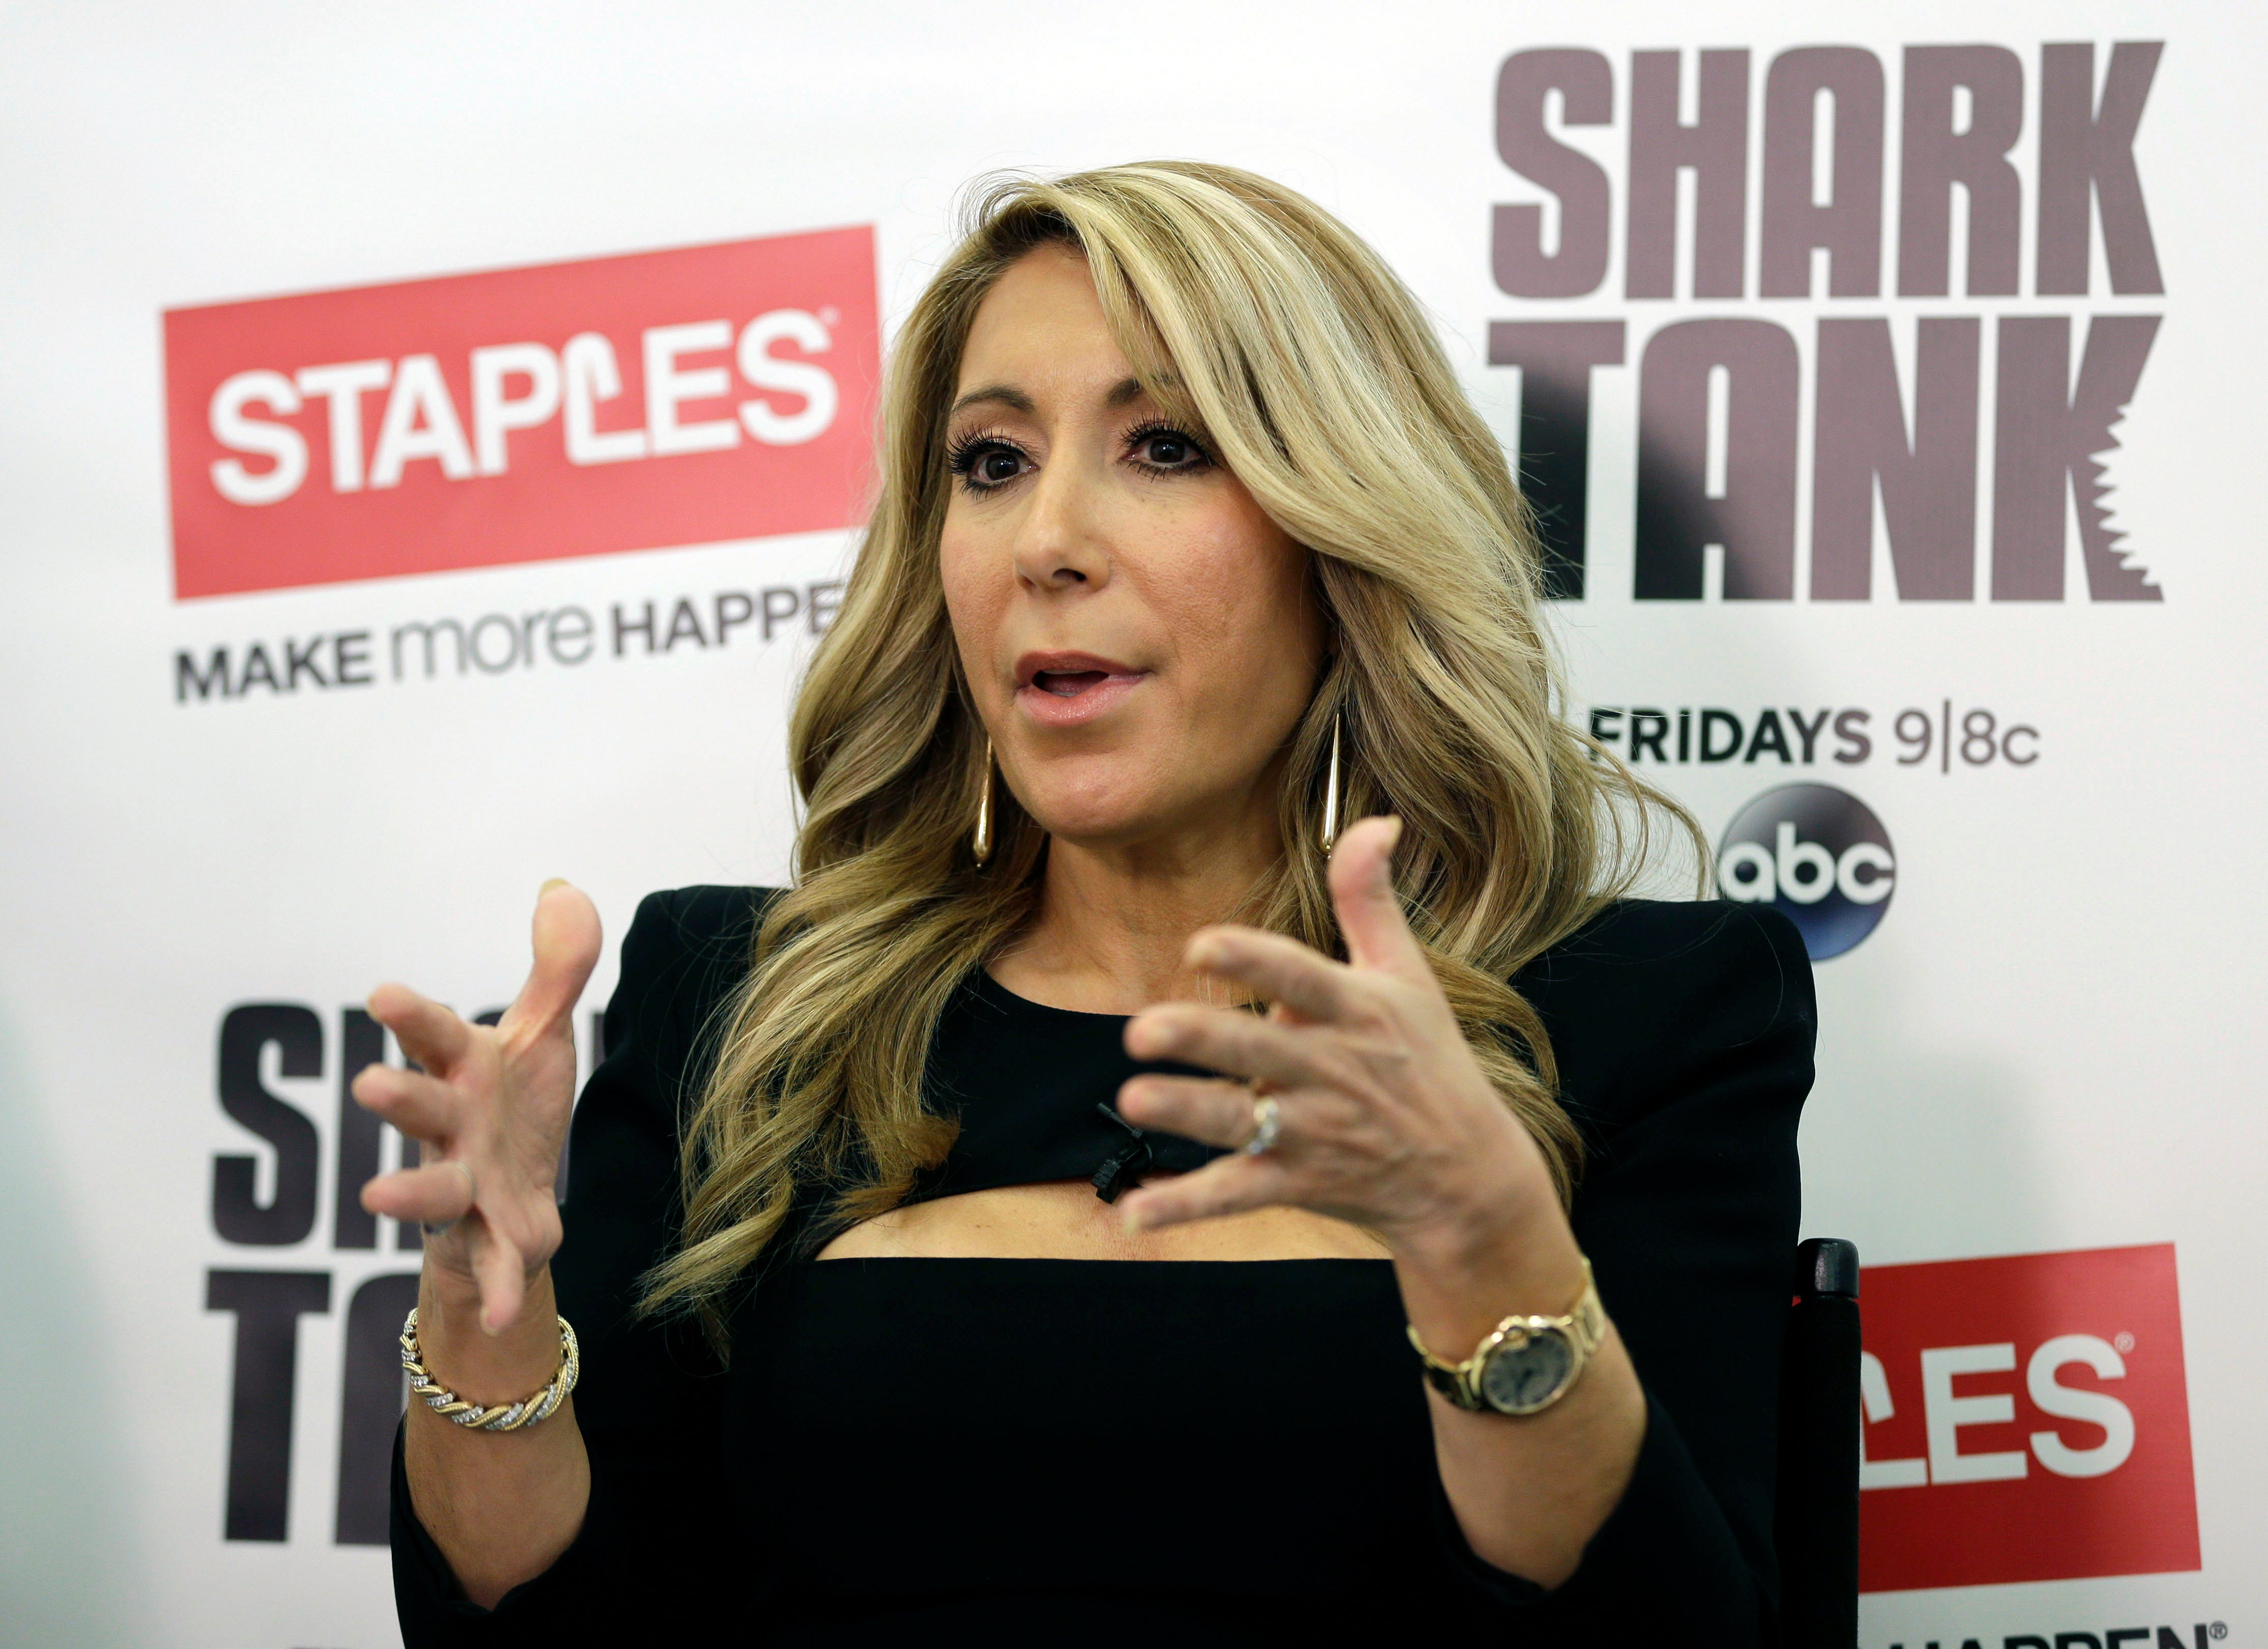 Lori Greiner explains how to get on QVC